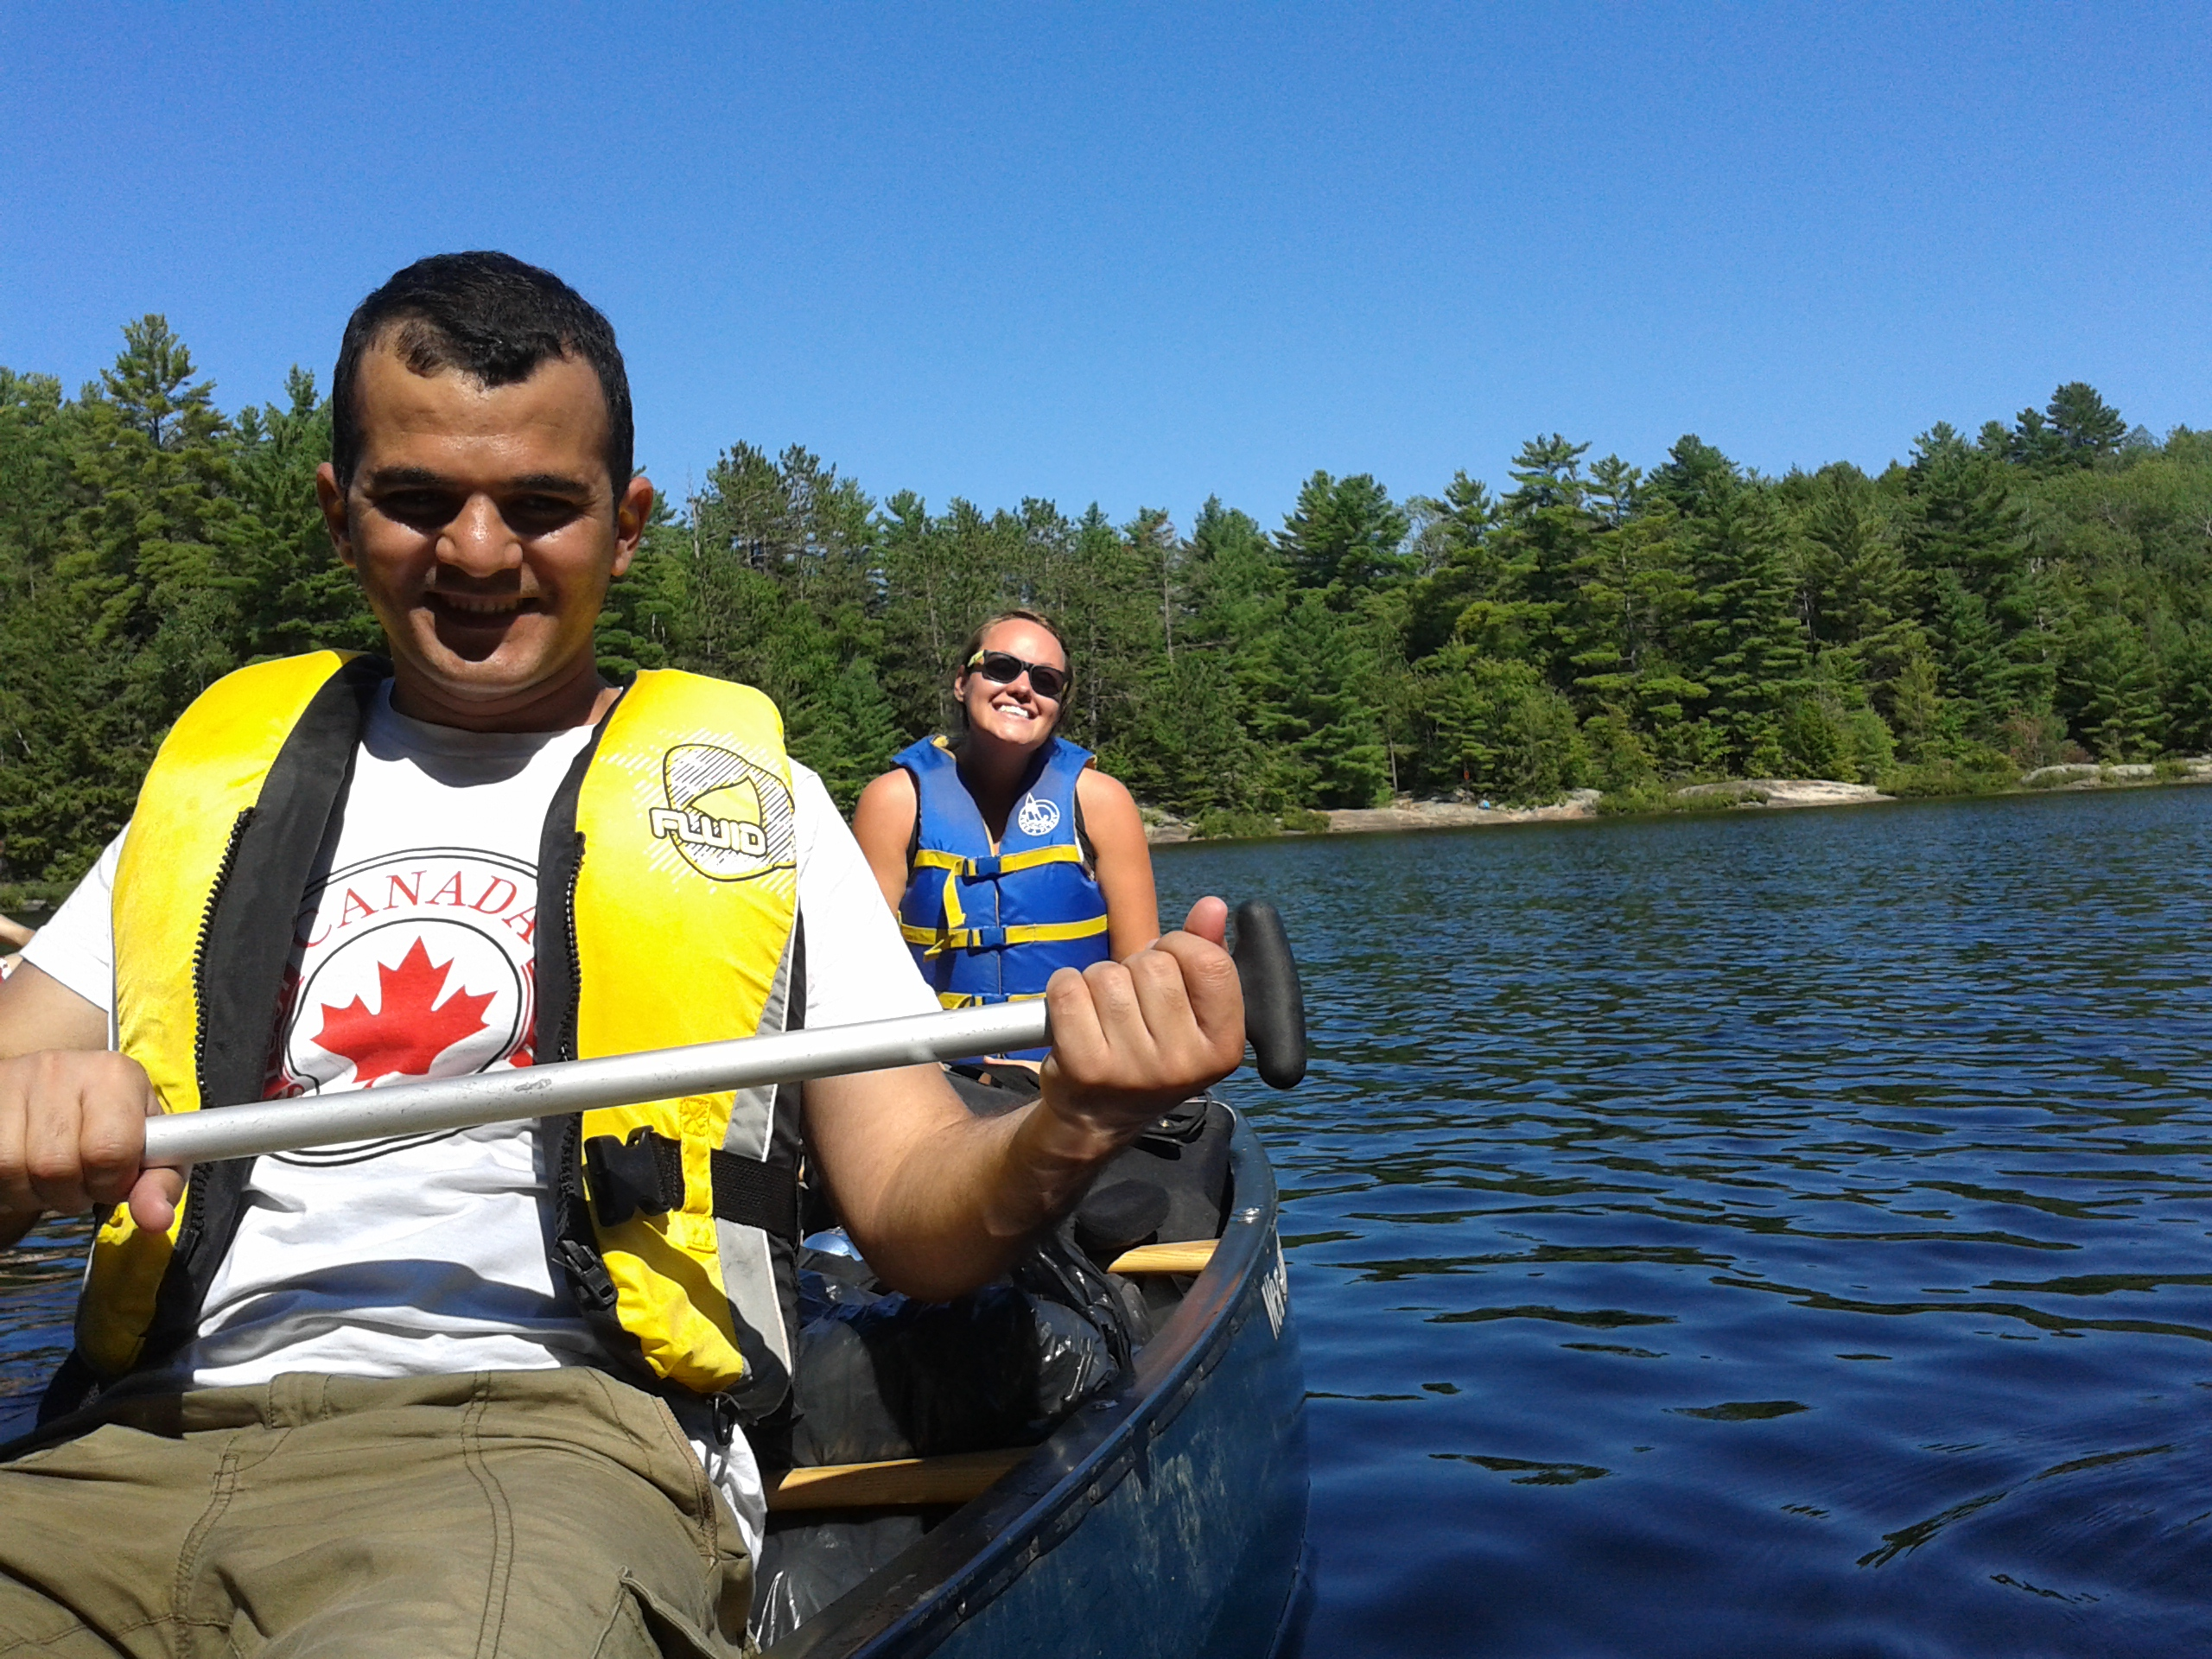 Smiling man and woman paddle a canoe